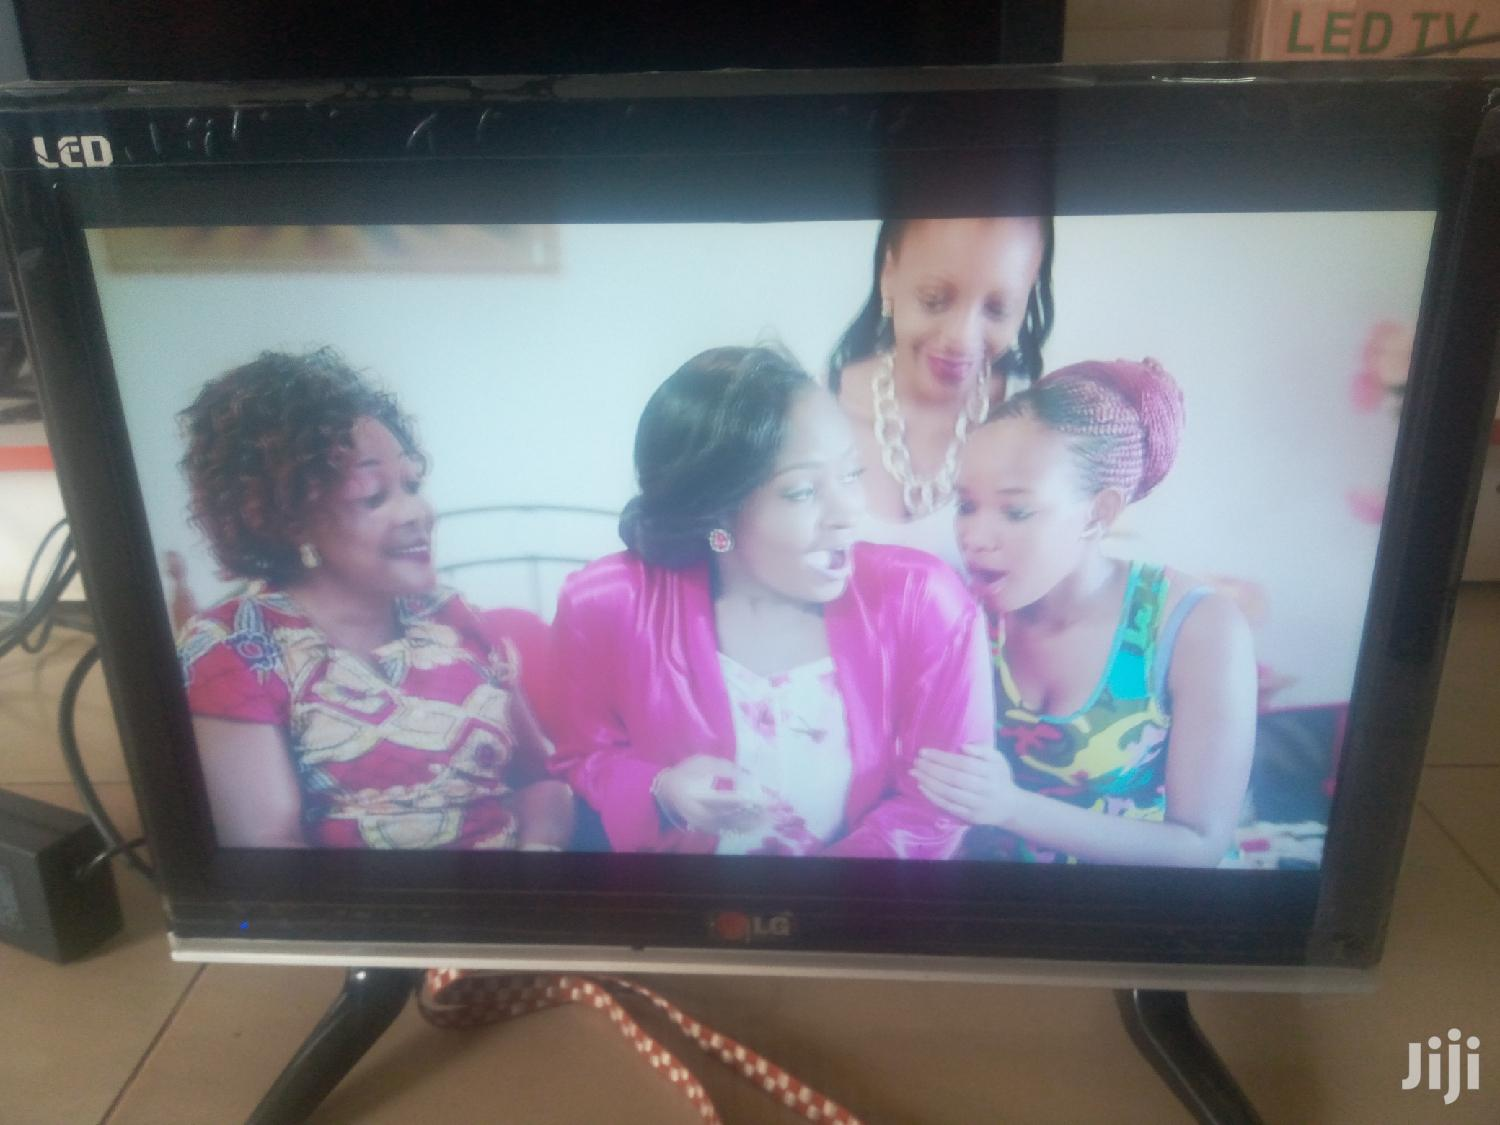 LG Led Digital TV 22 Inches | TV & DVD Equipment for sale in Kampala, Central Region, Uganda